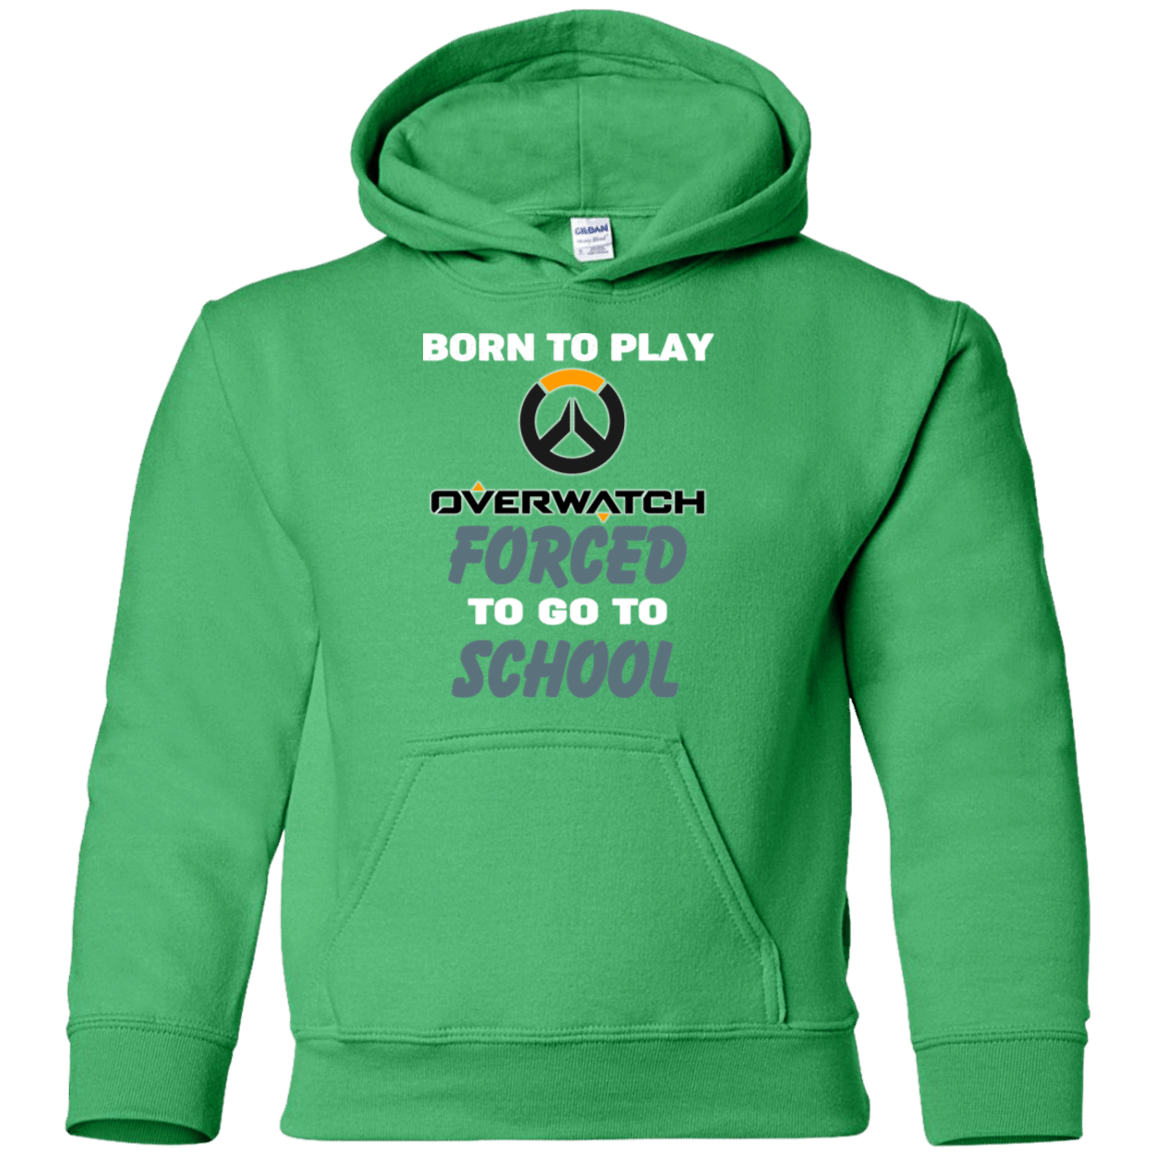 Born To Play Overwatch Forced To Go To School 59-2486-74209661-12622 - Tee Ript